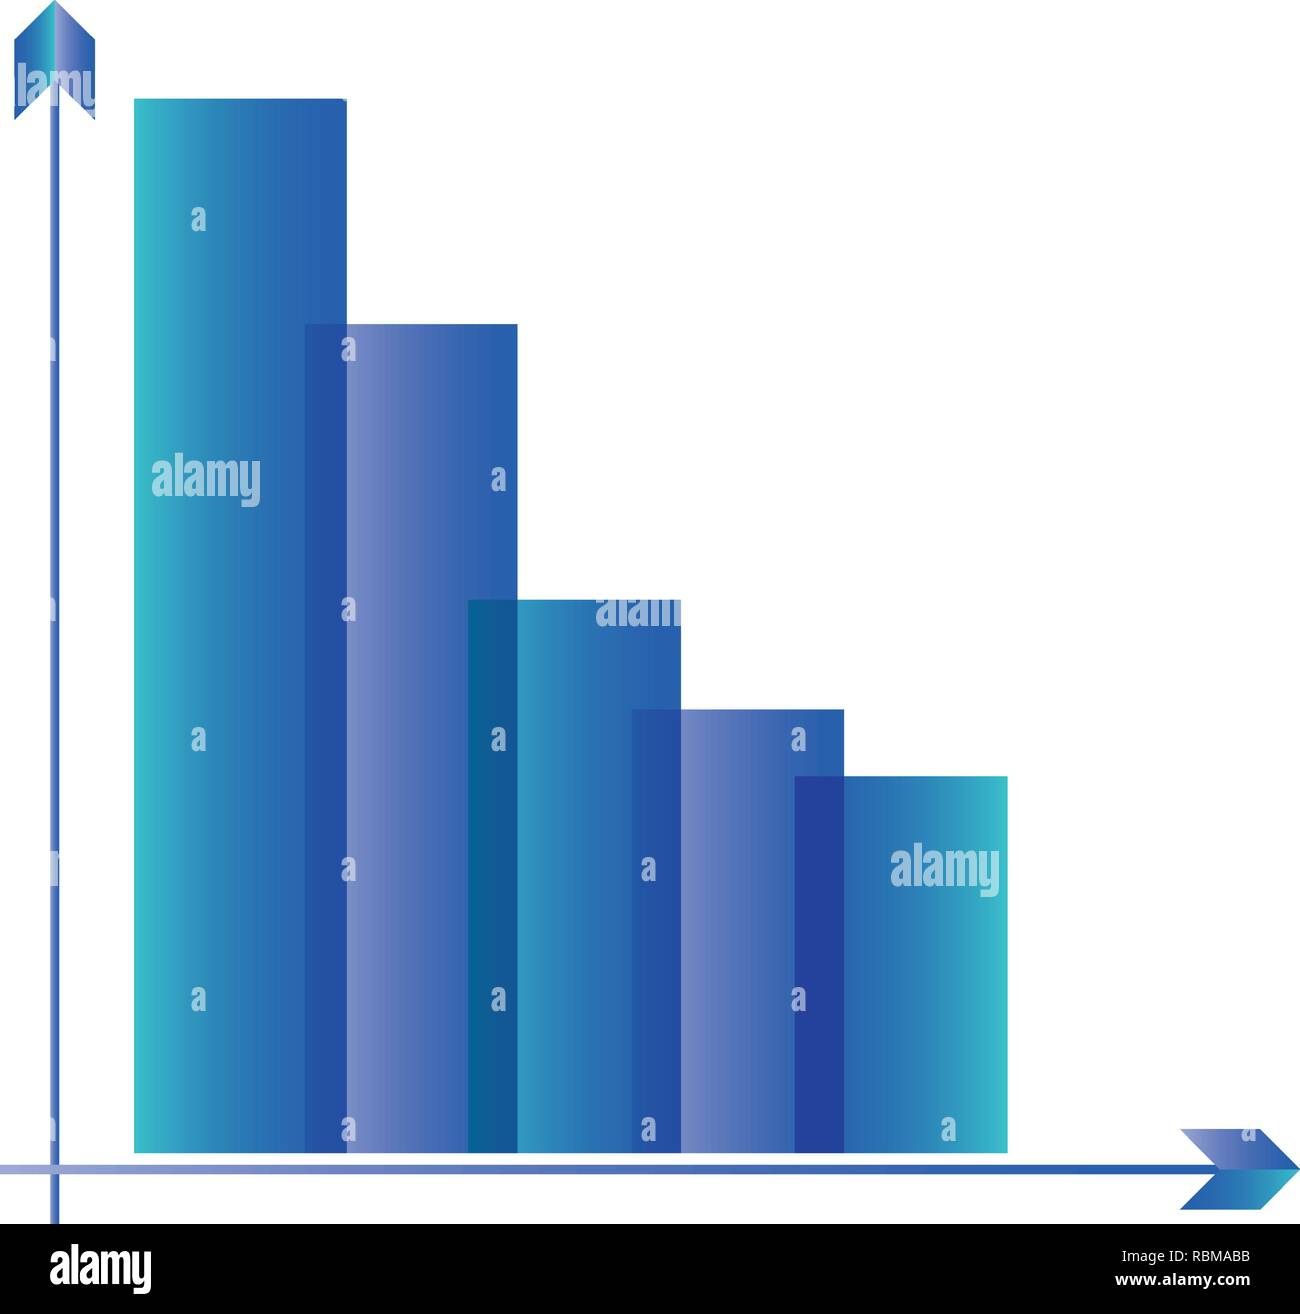 graphic statistics isolated icon vector illustration design - Stock Image